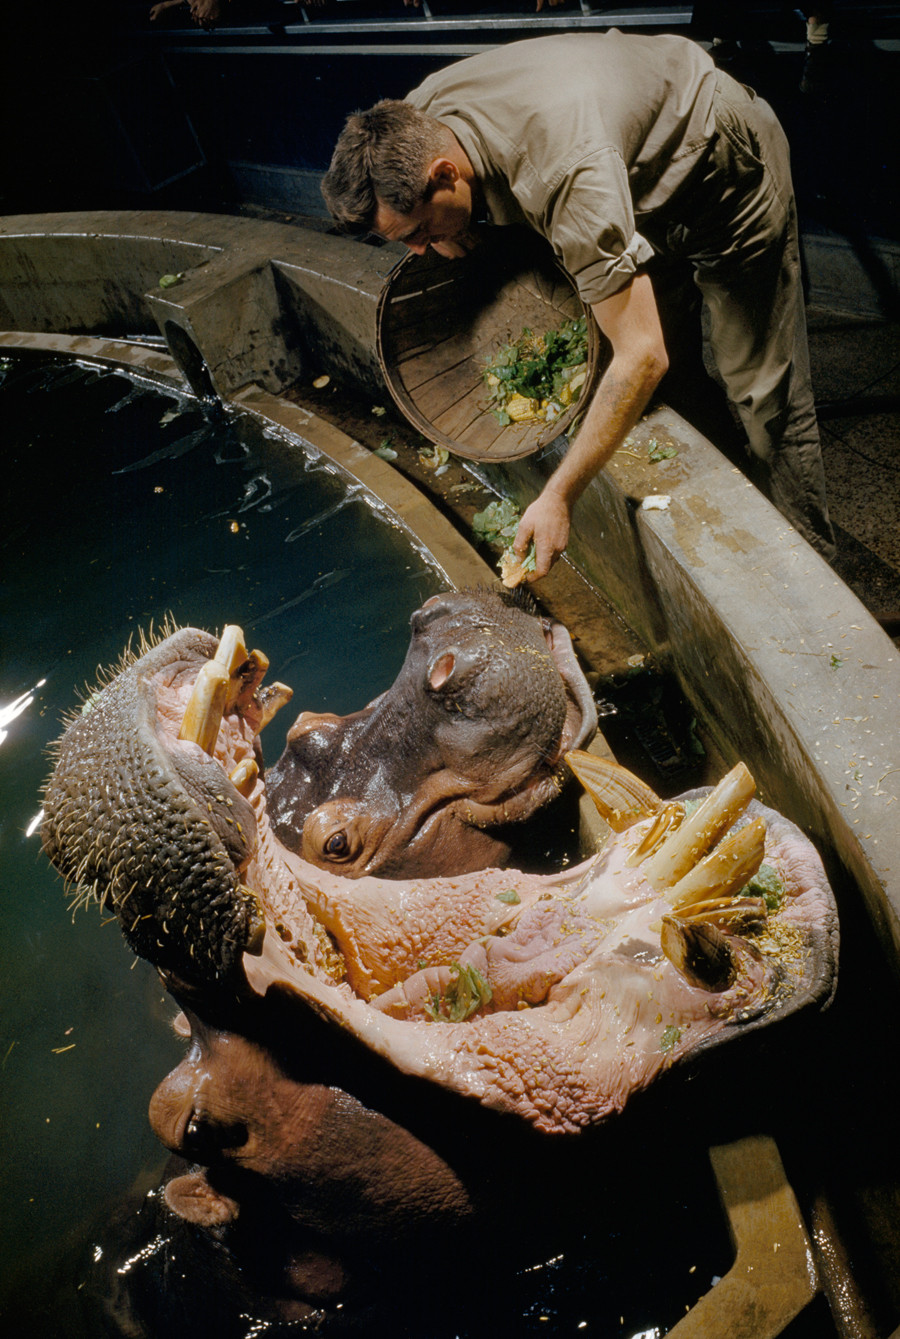 National geographic hippo and tortoise book